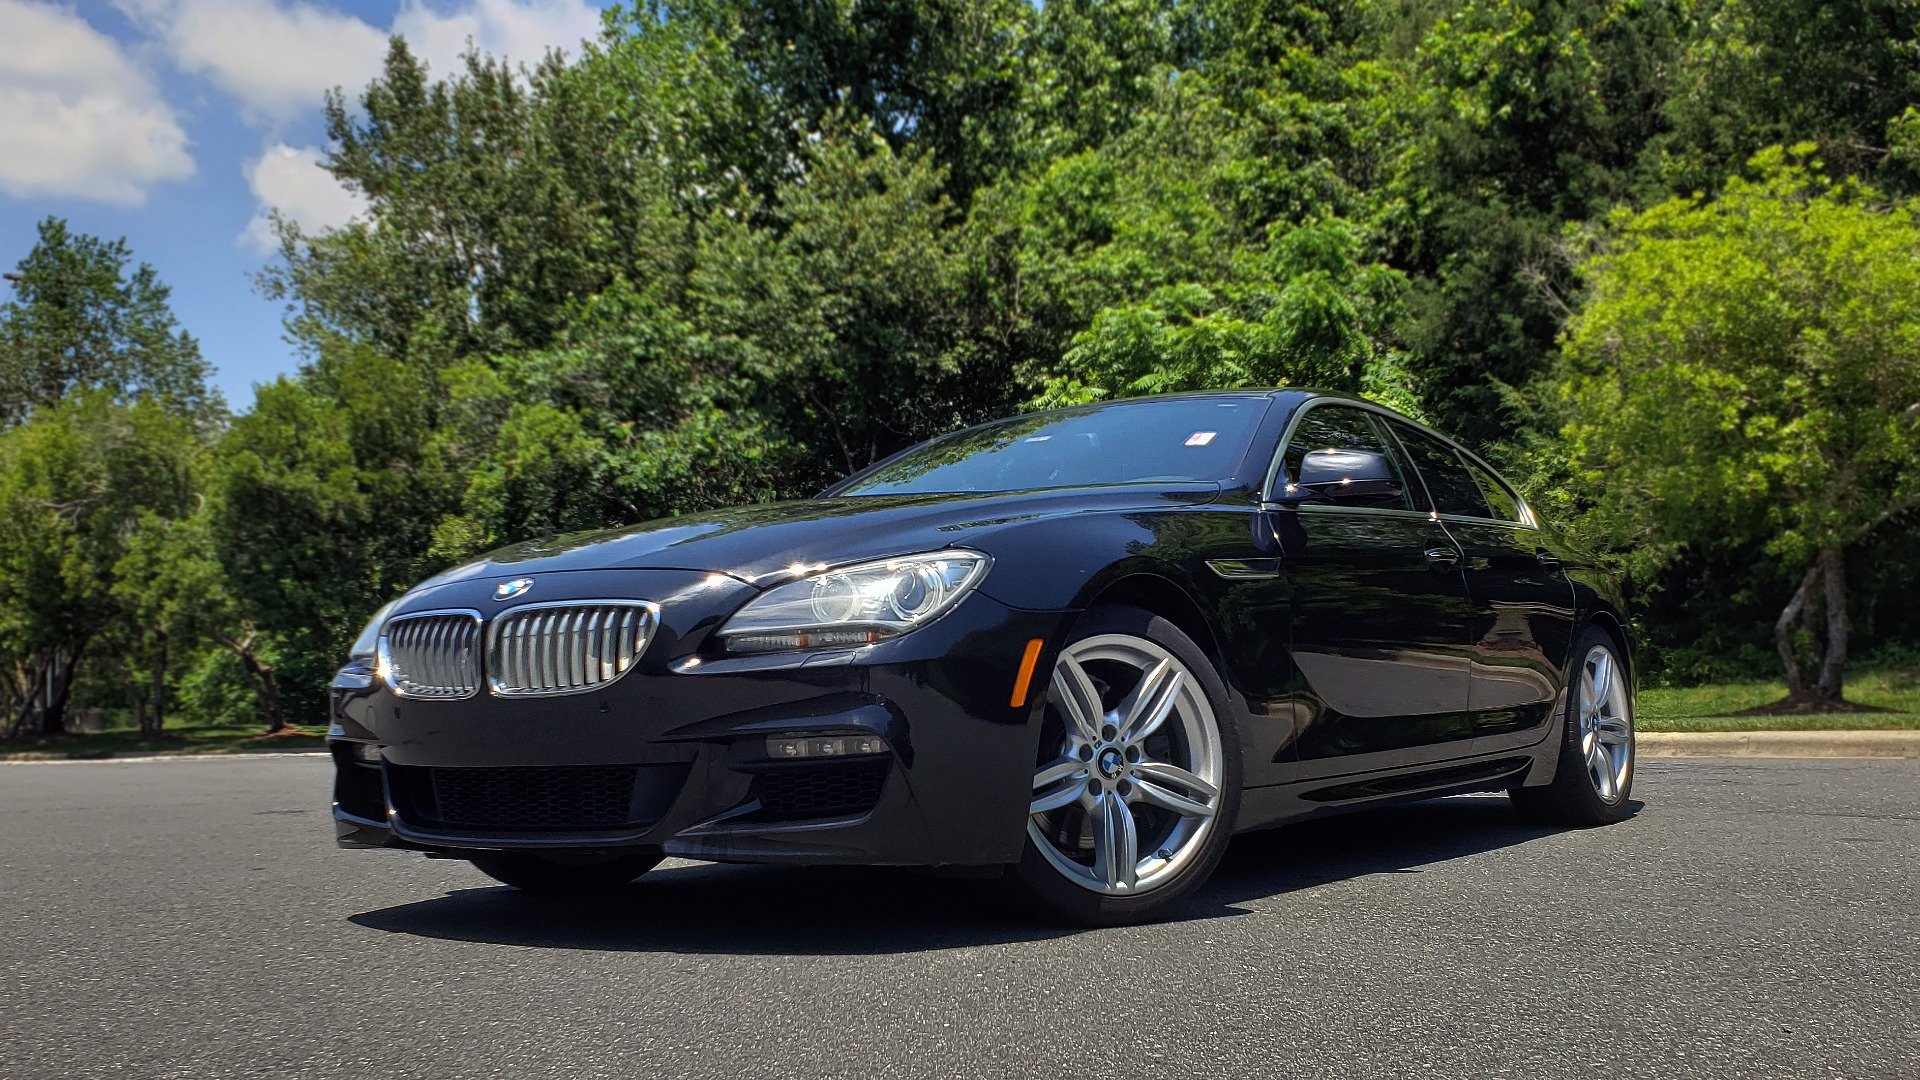 Used 2013 BMW 6 SERIES 650I GRANCOUPE / M-SPORT / LUXURY / NAV / SUNROOF / HTD STS for sale Sold at Formula Imports in Charlotte NC 28227 90